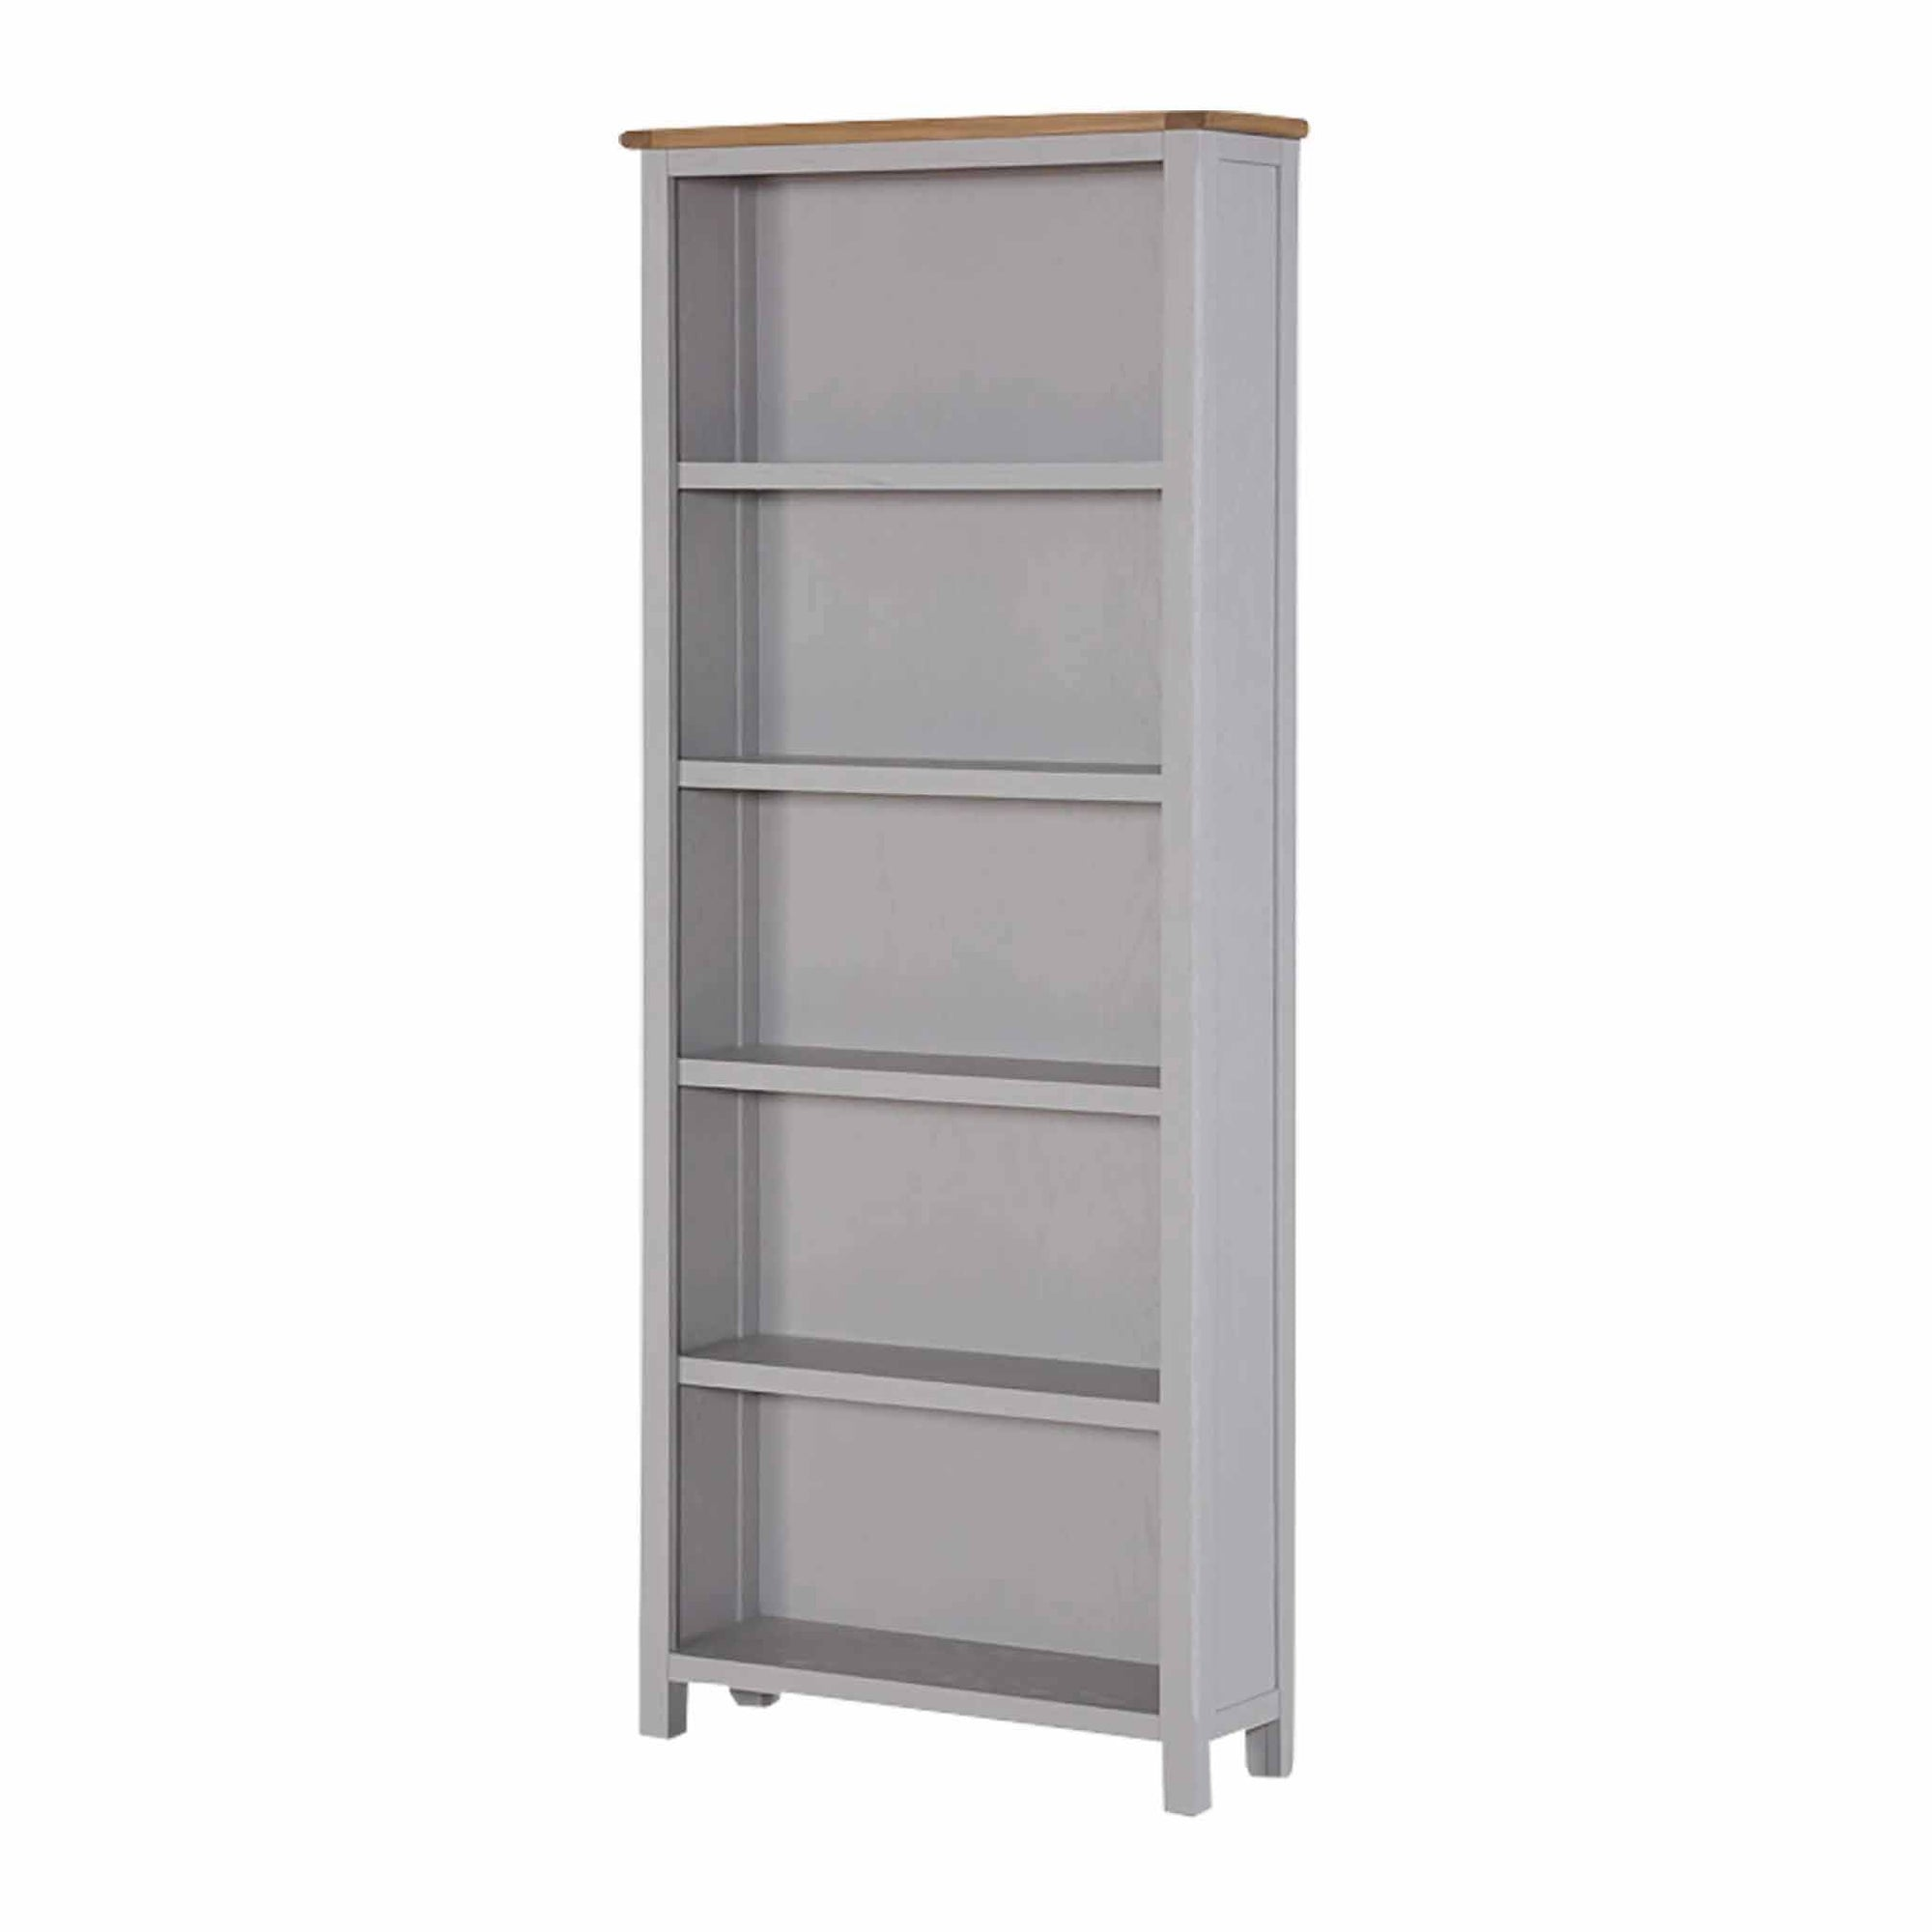 Kilmore Painted Tall Bookcase by Roseland Furniture